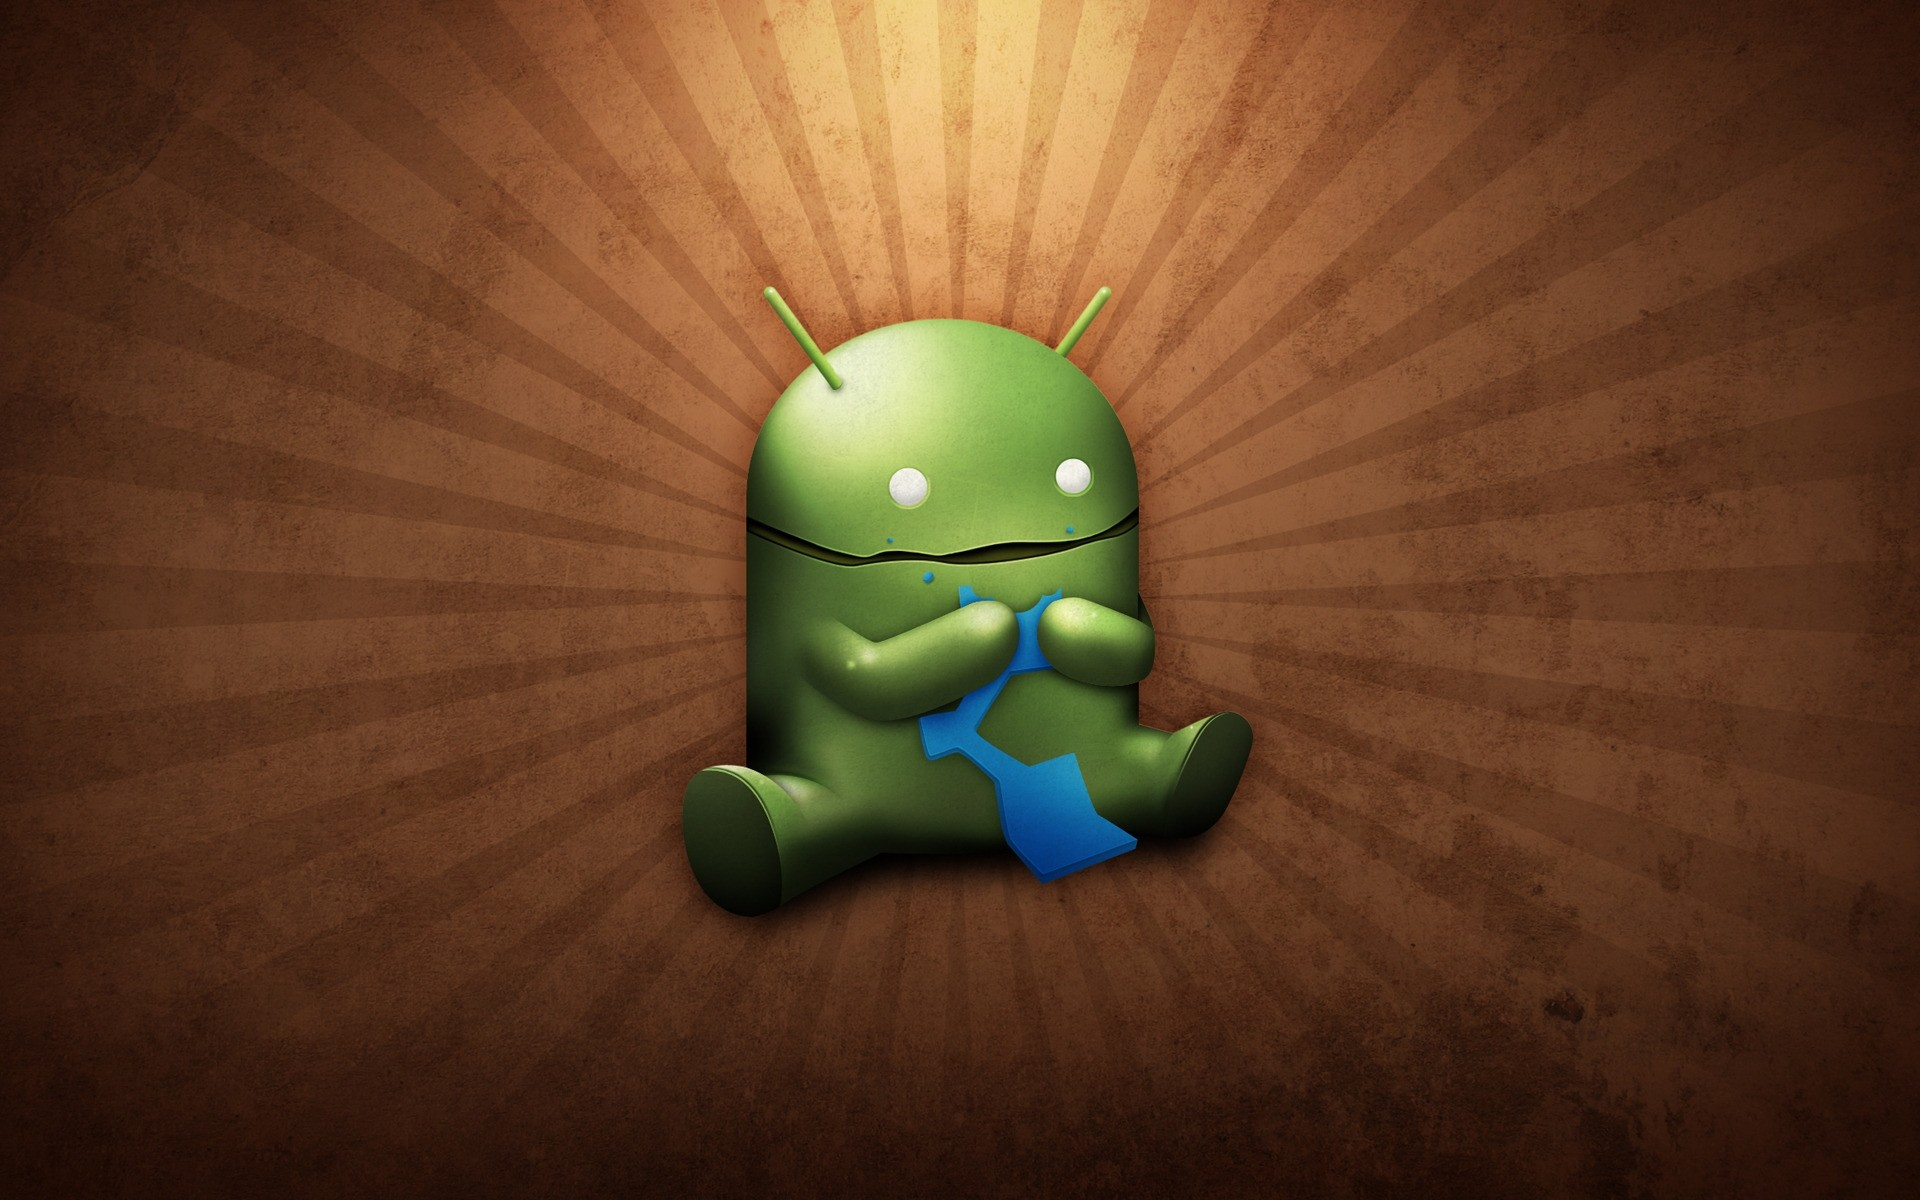 android wood android logo funny android android robot tech gadget